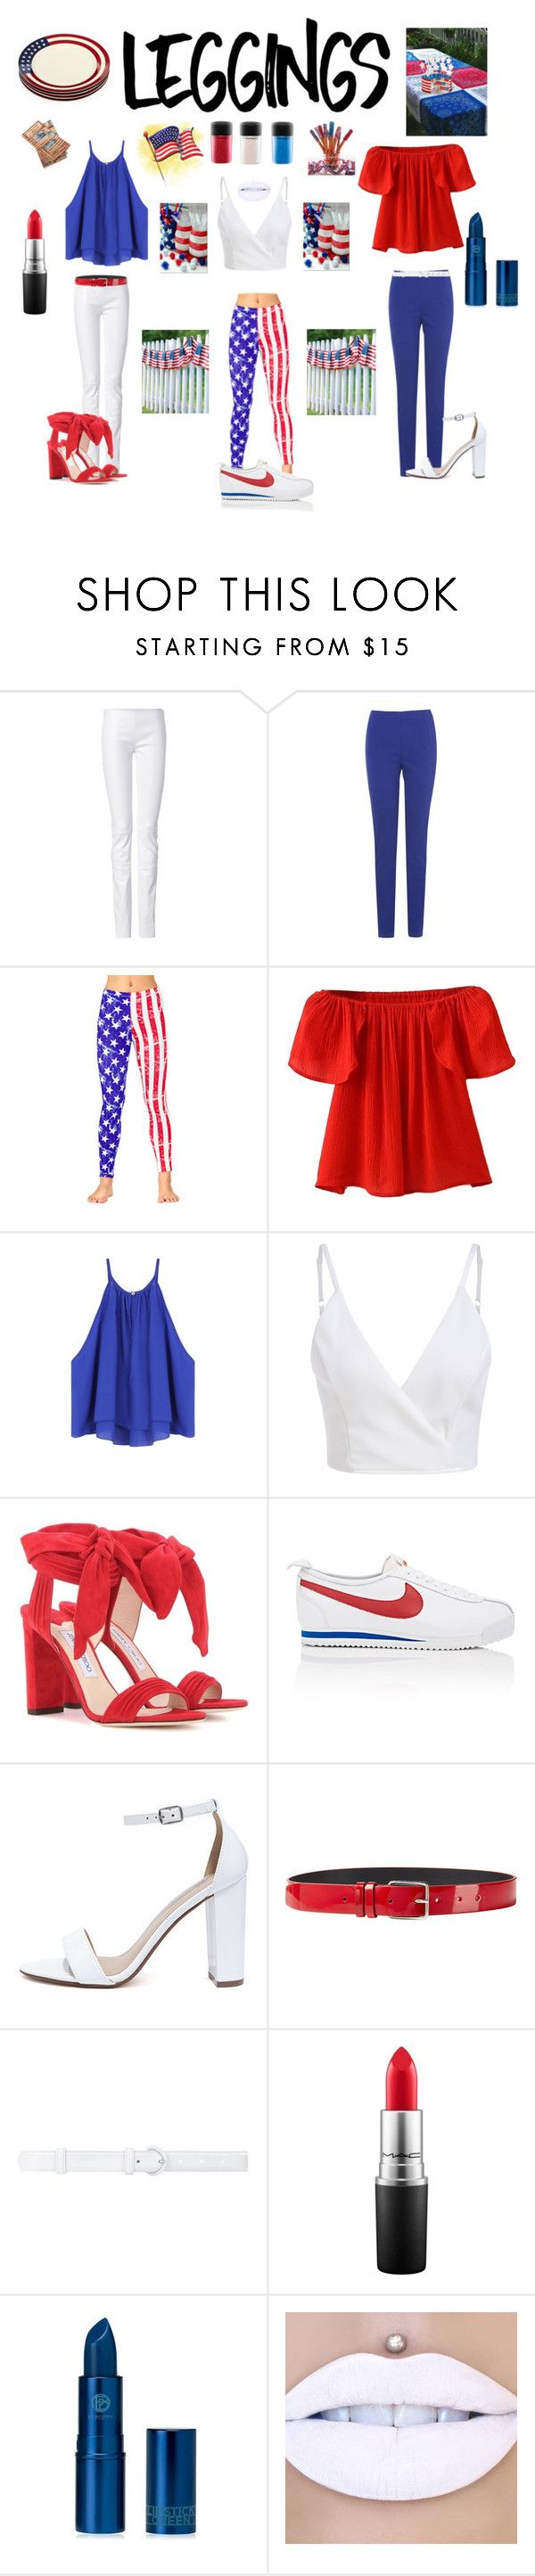 """Red, White & Blue Leggins"" by kotnourka ❤ liked on Polyvore featuring Jitrois, Phase Eight, WithChic, Jimmy Choo, NIKE, My Delicious, Jil Sander, Oscar de la Renta, MAC Cosmetics and Lipstick Queen"